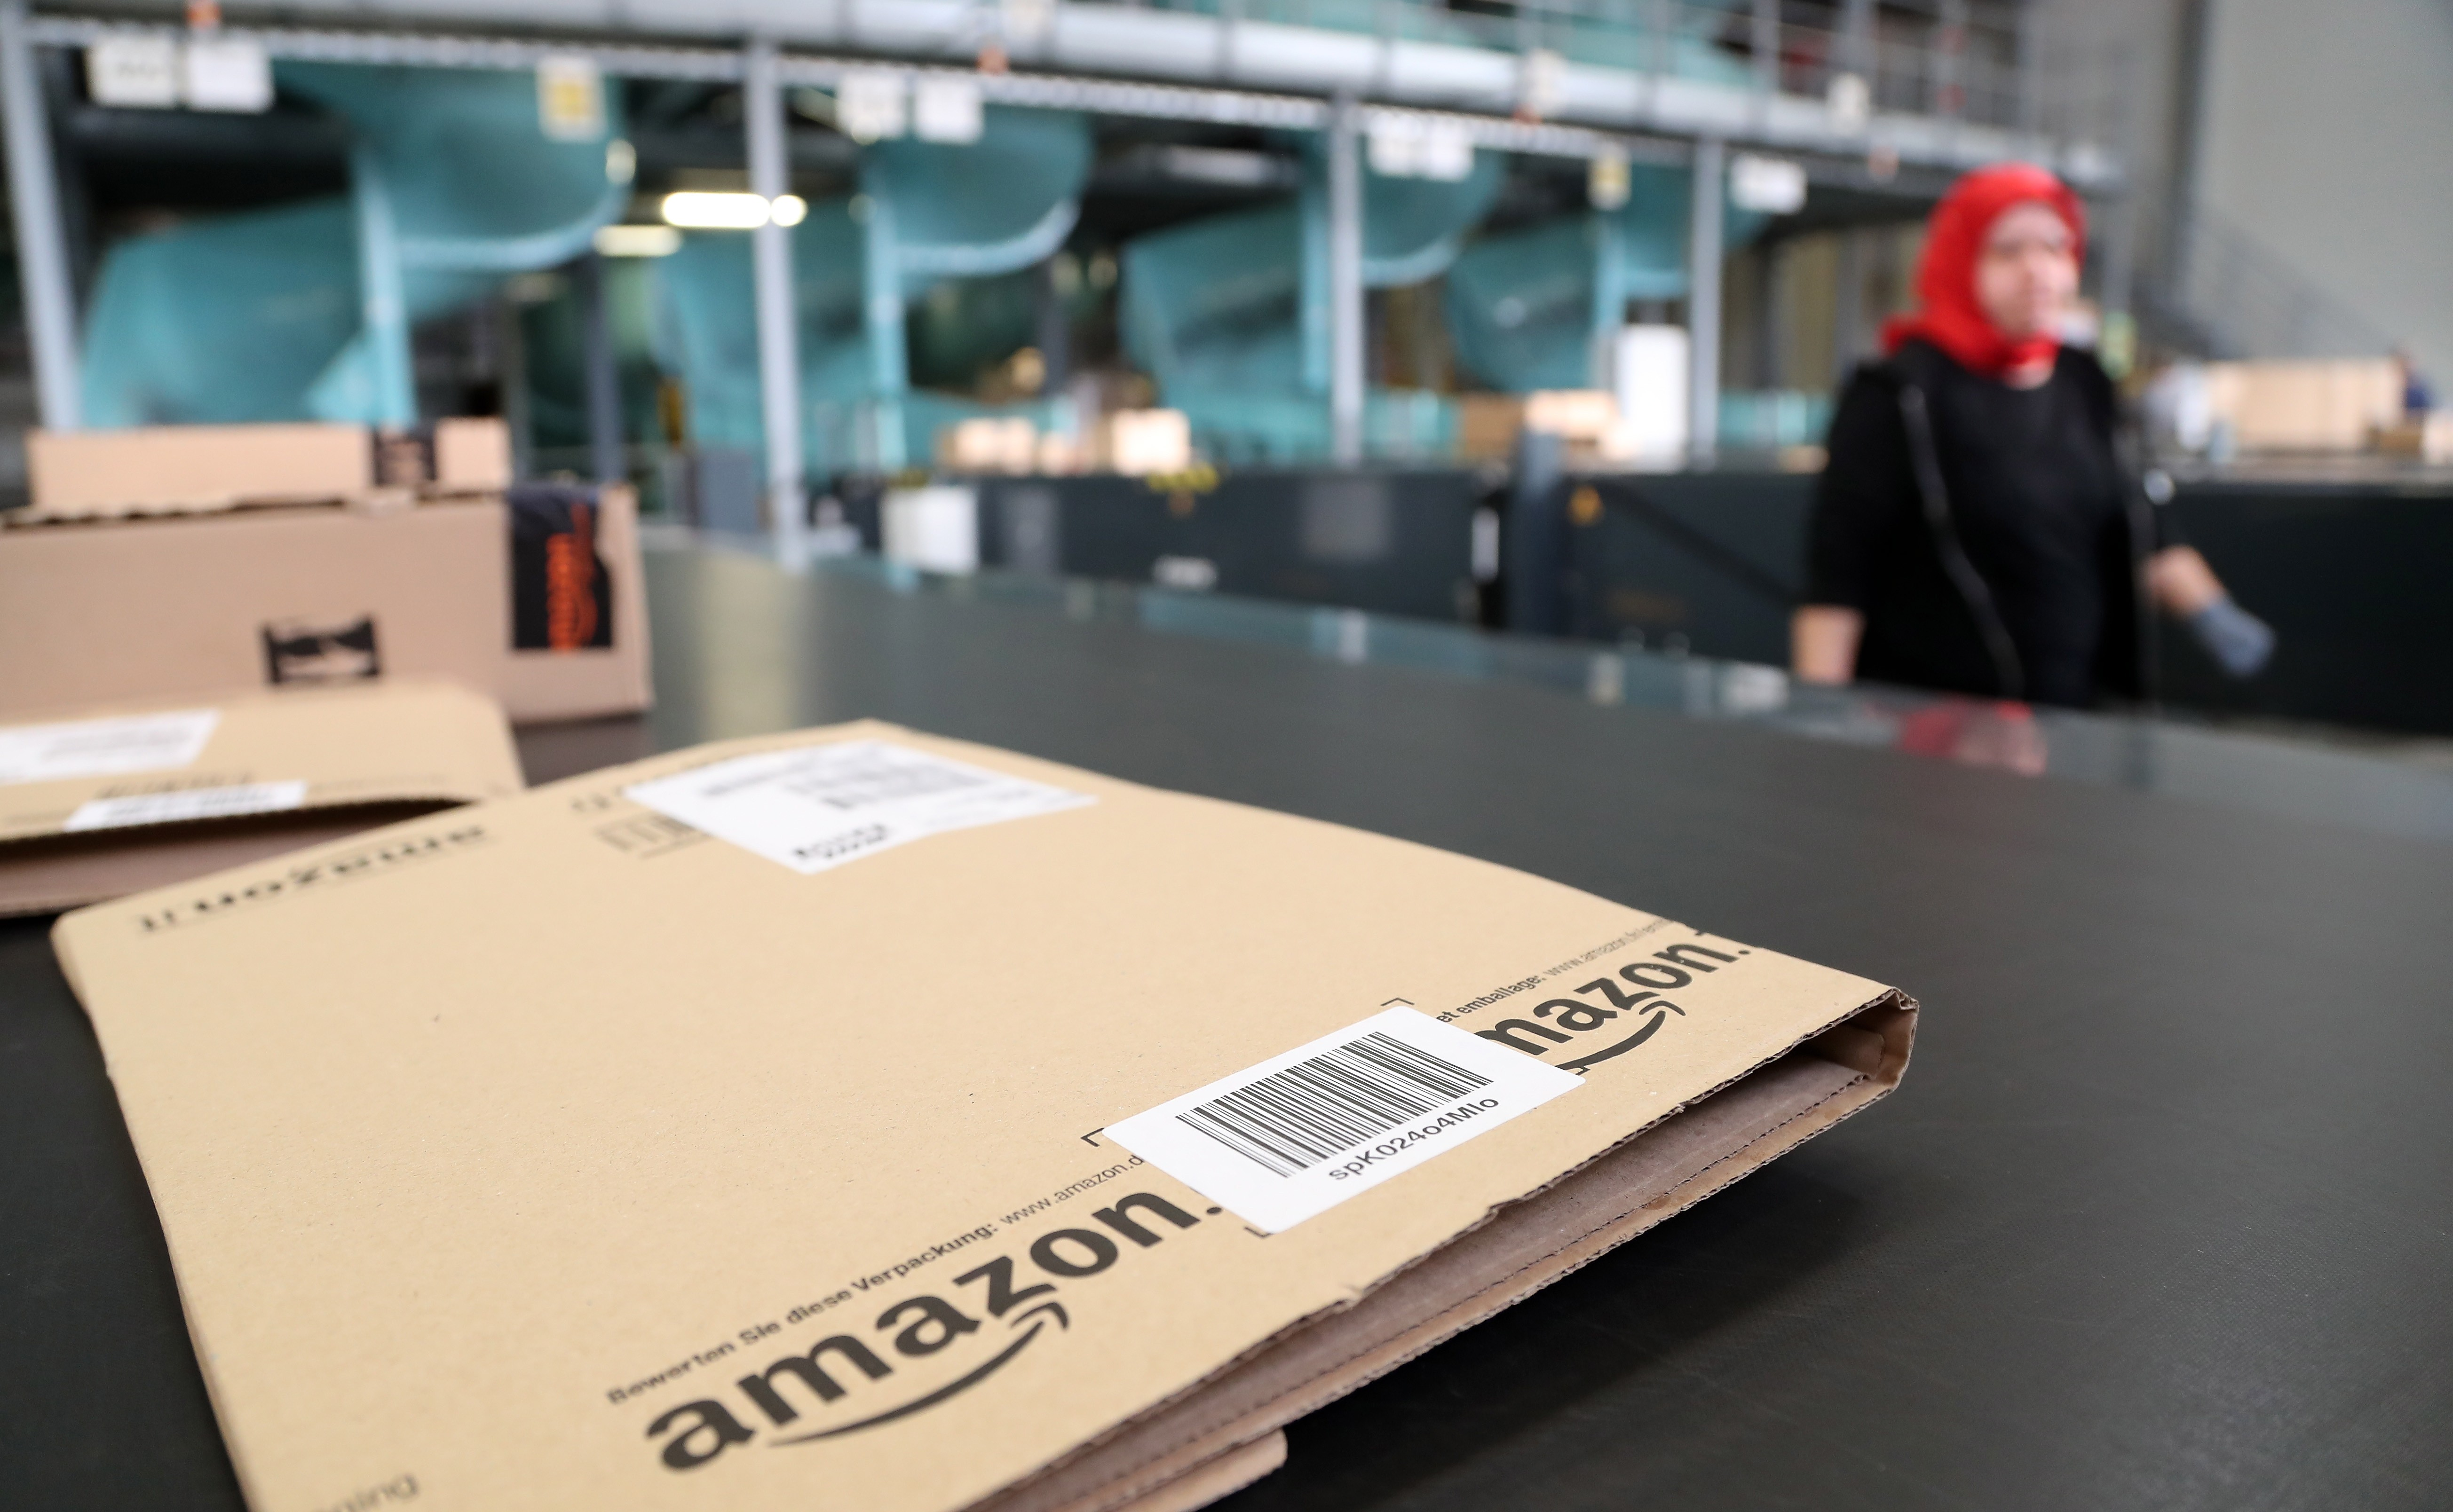 It is still too early to write off Amazon in China's e